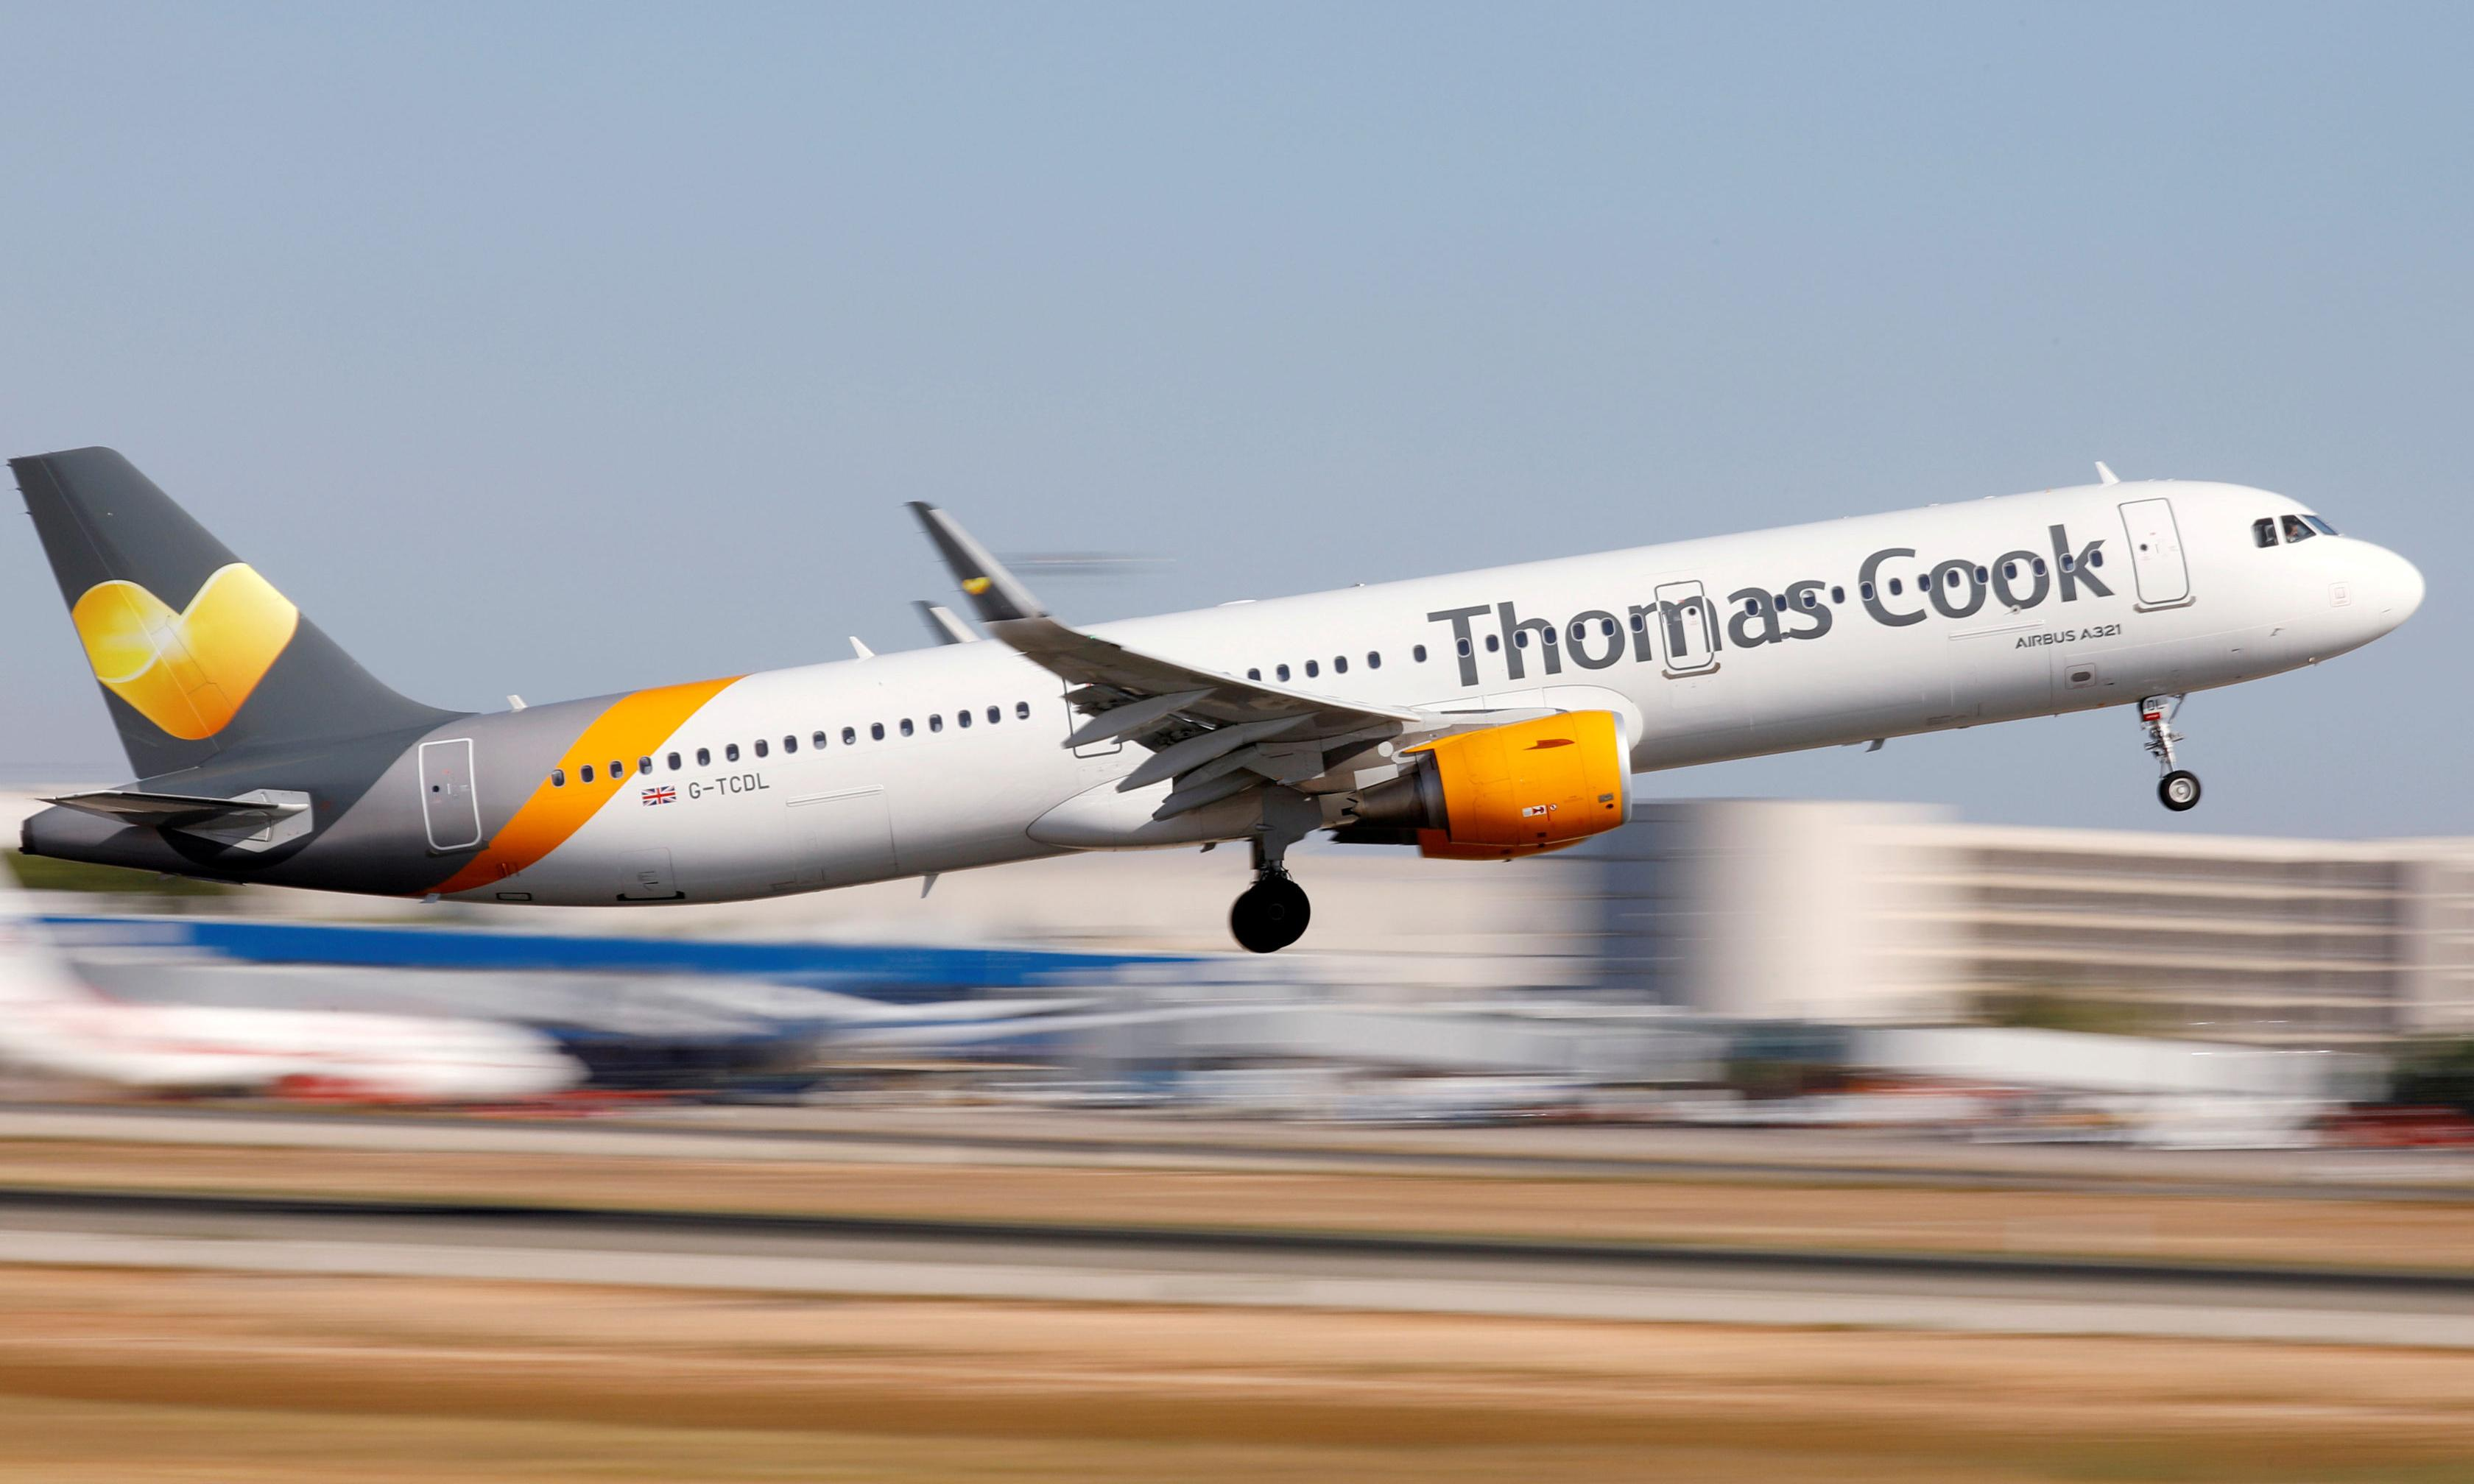 Can Thomas Cook find a path through its perfect storm of woes?